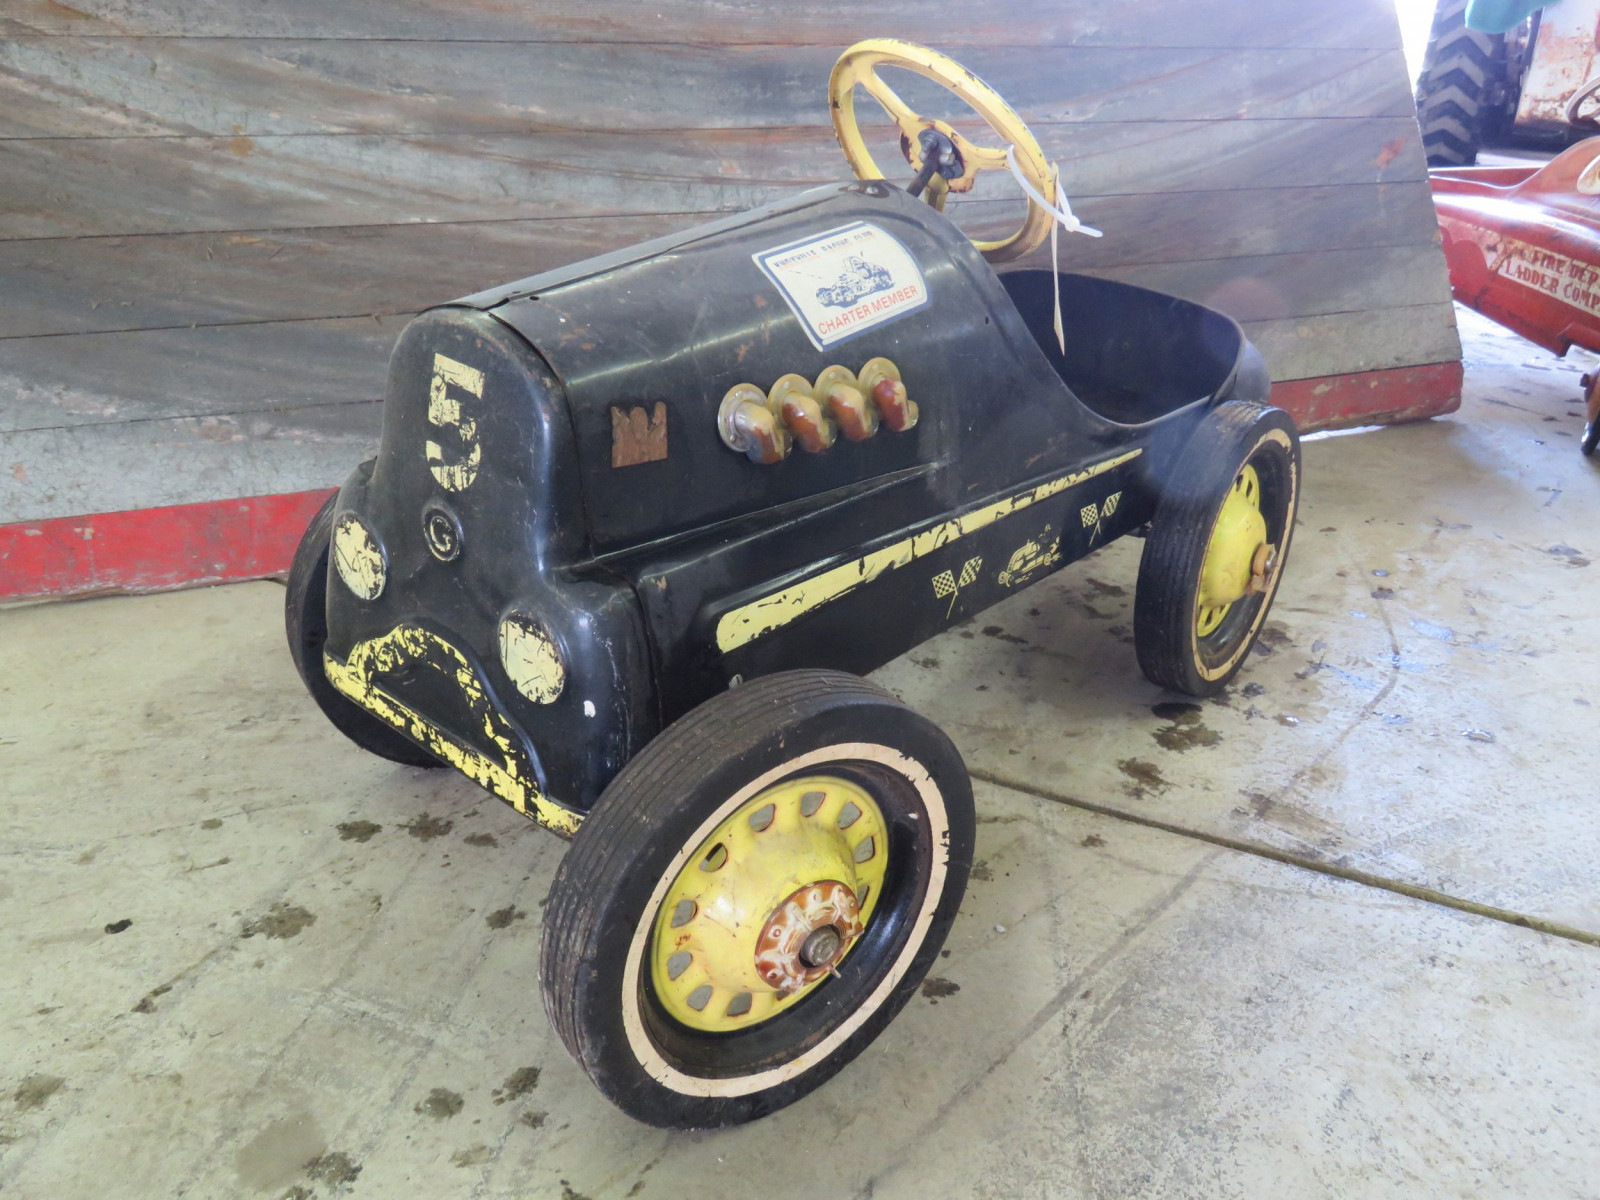 Vintage Garton Hot Rod Pedal Car - Image 1